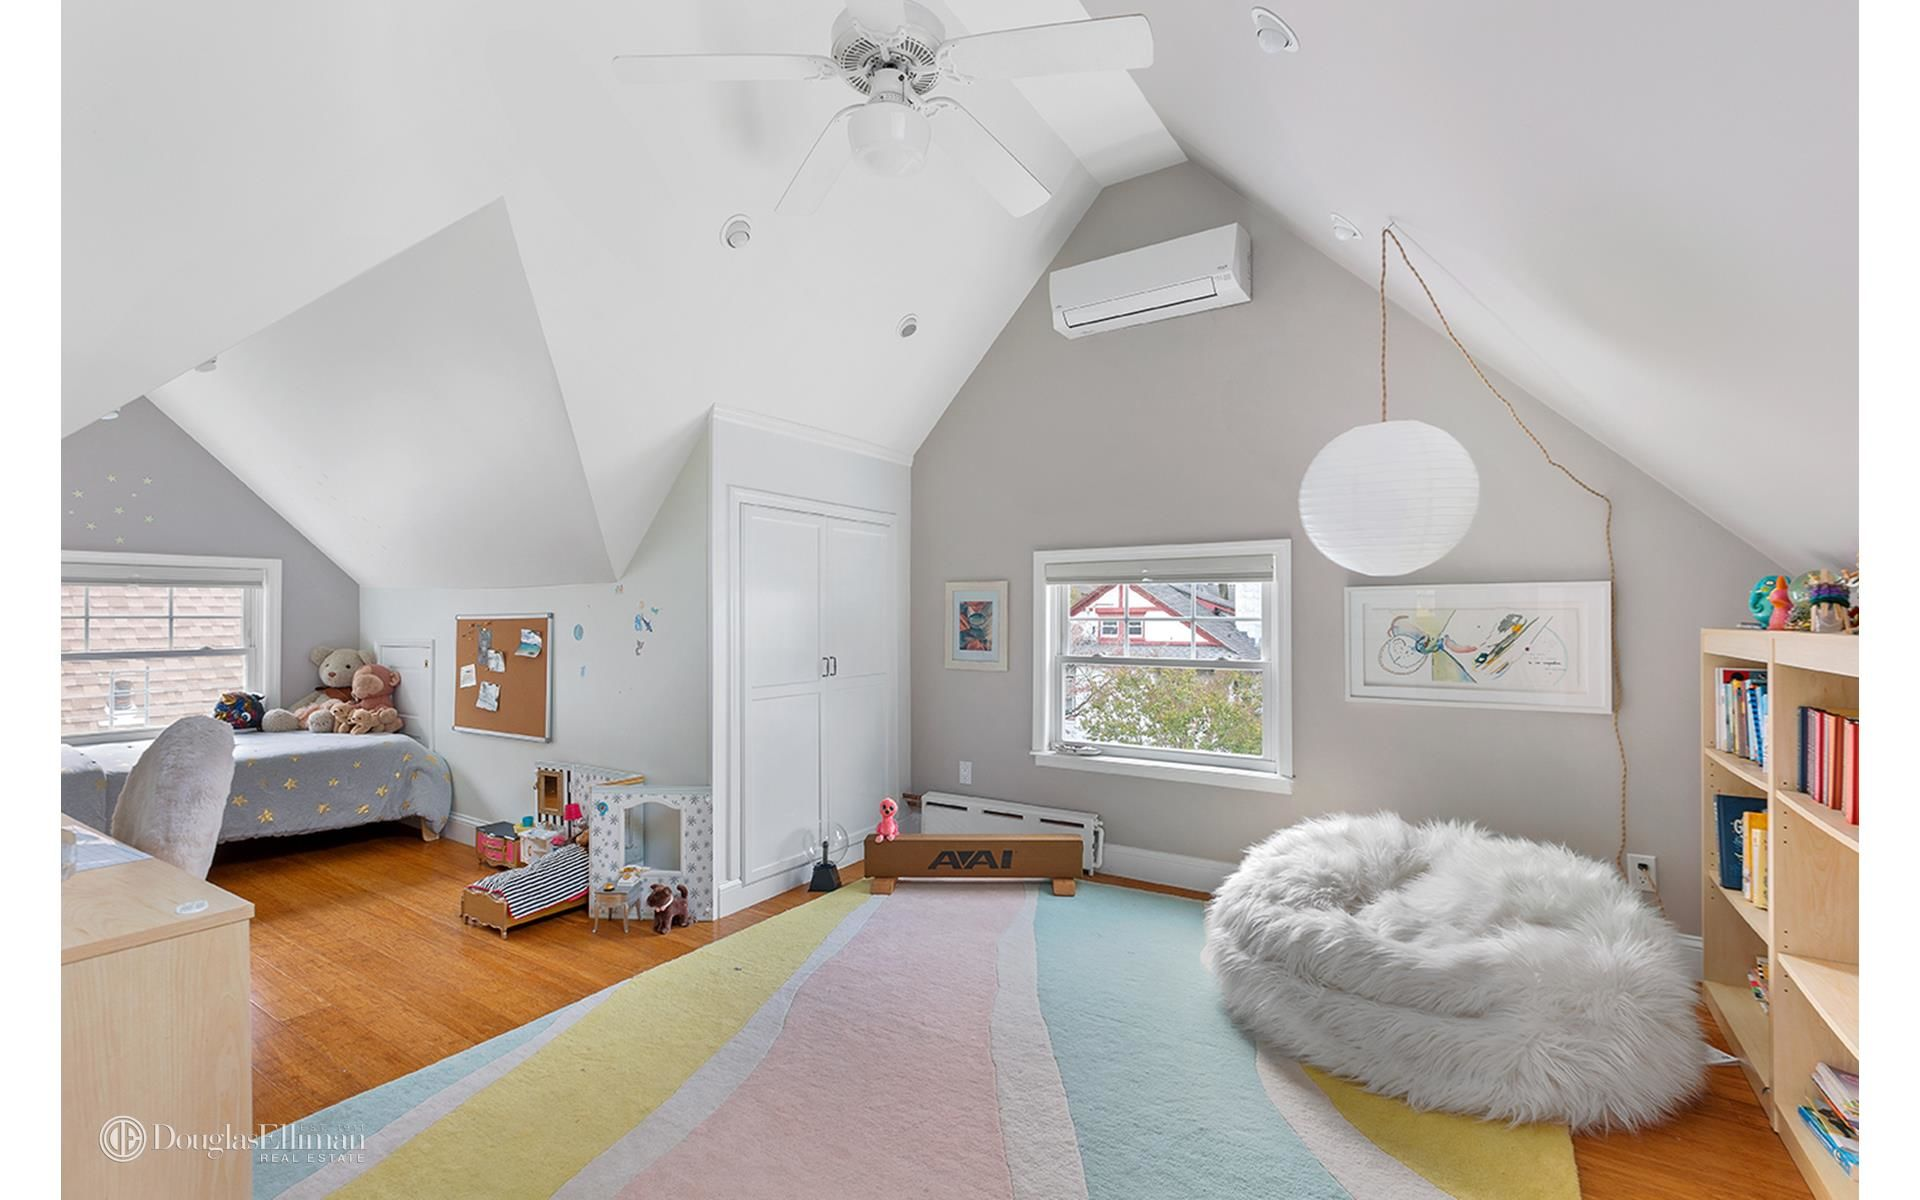 498 Westminster Rd Photo 15 - ELLIMAN-4609557